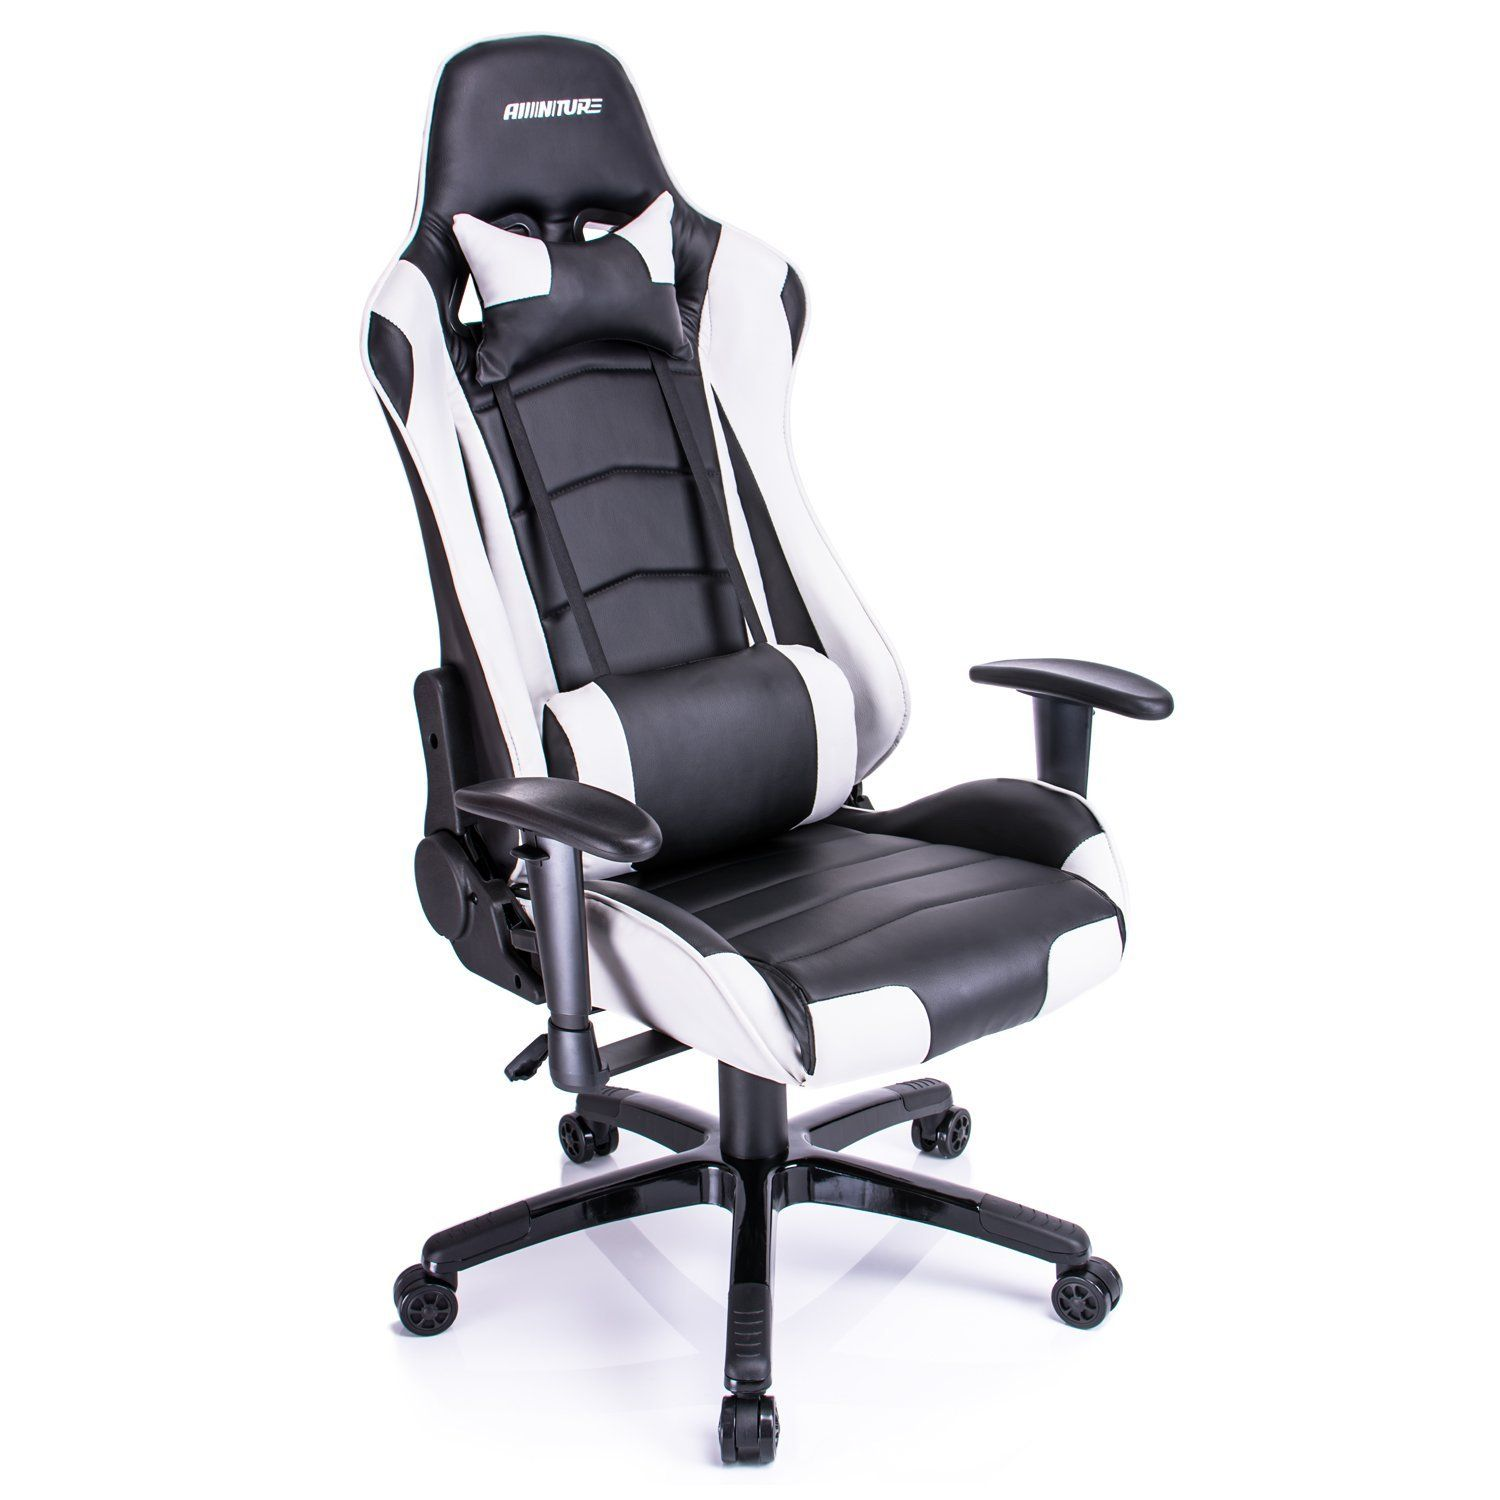 Amazoncom Aminitrue High Back Gaming Chair Racing Style Adjustable Dxracer Series Oh Rv131 No Black Orange White Kitchen Dining